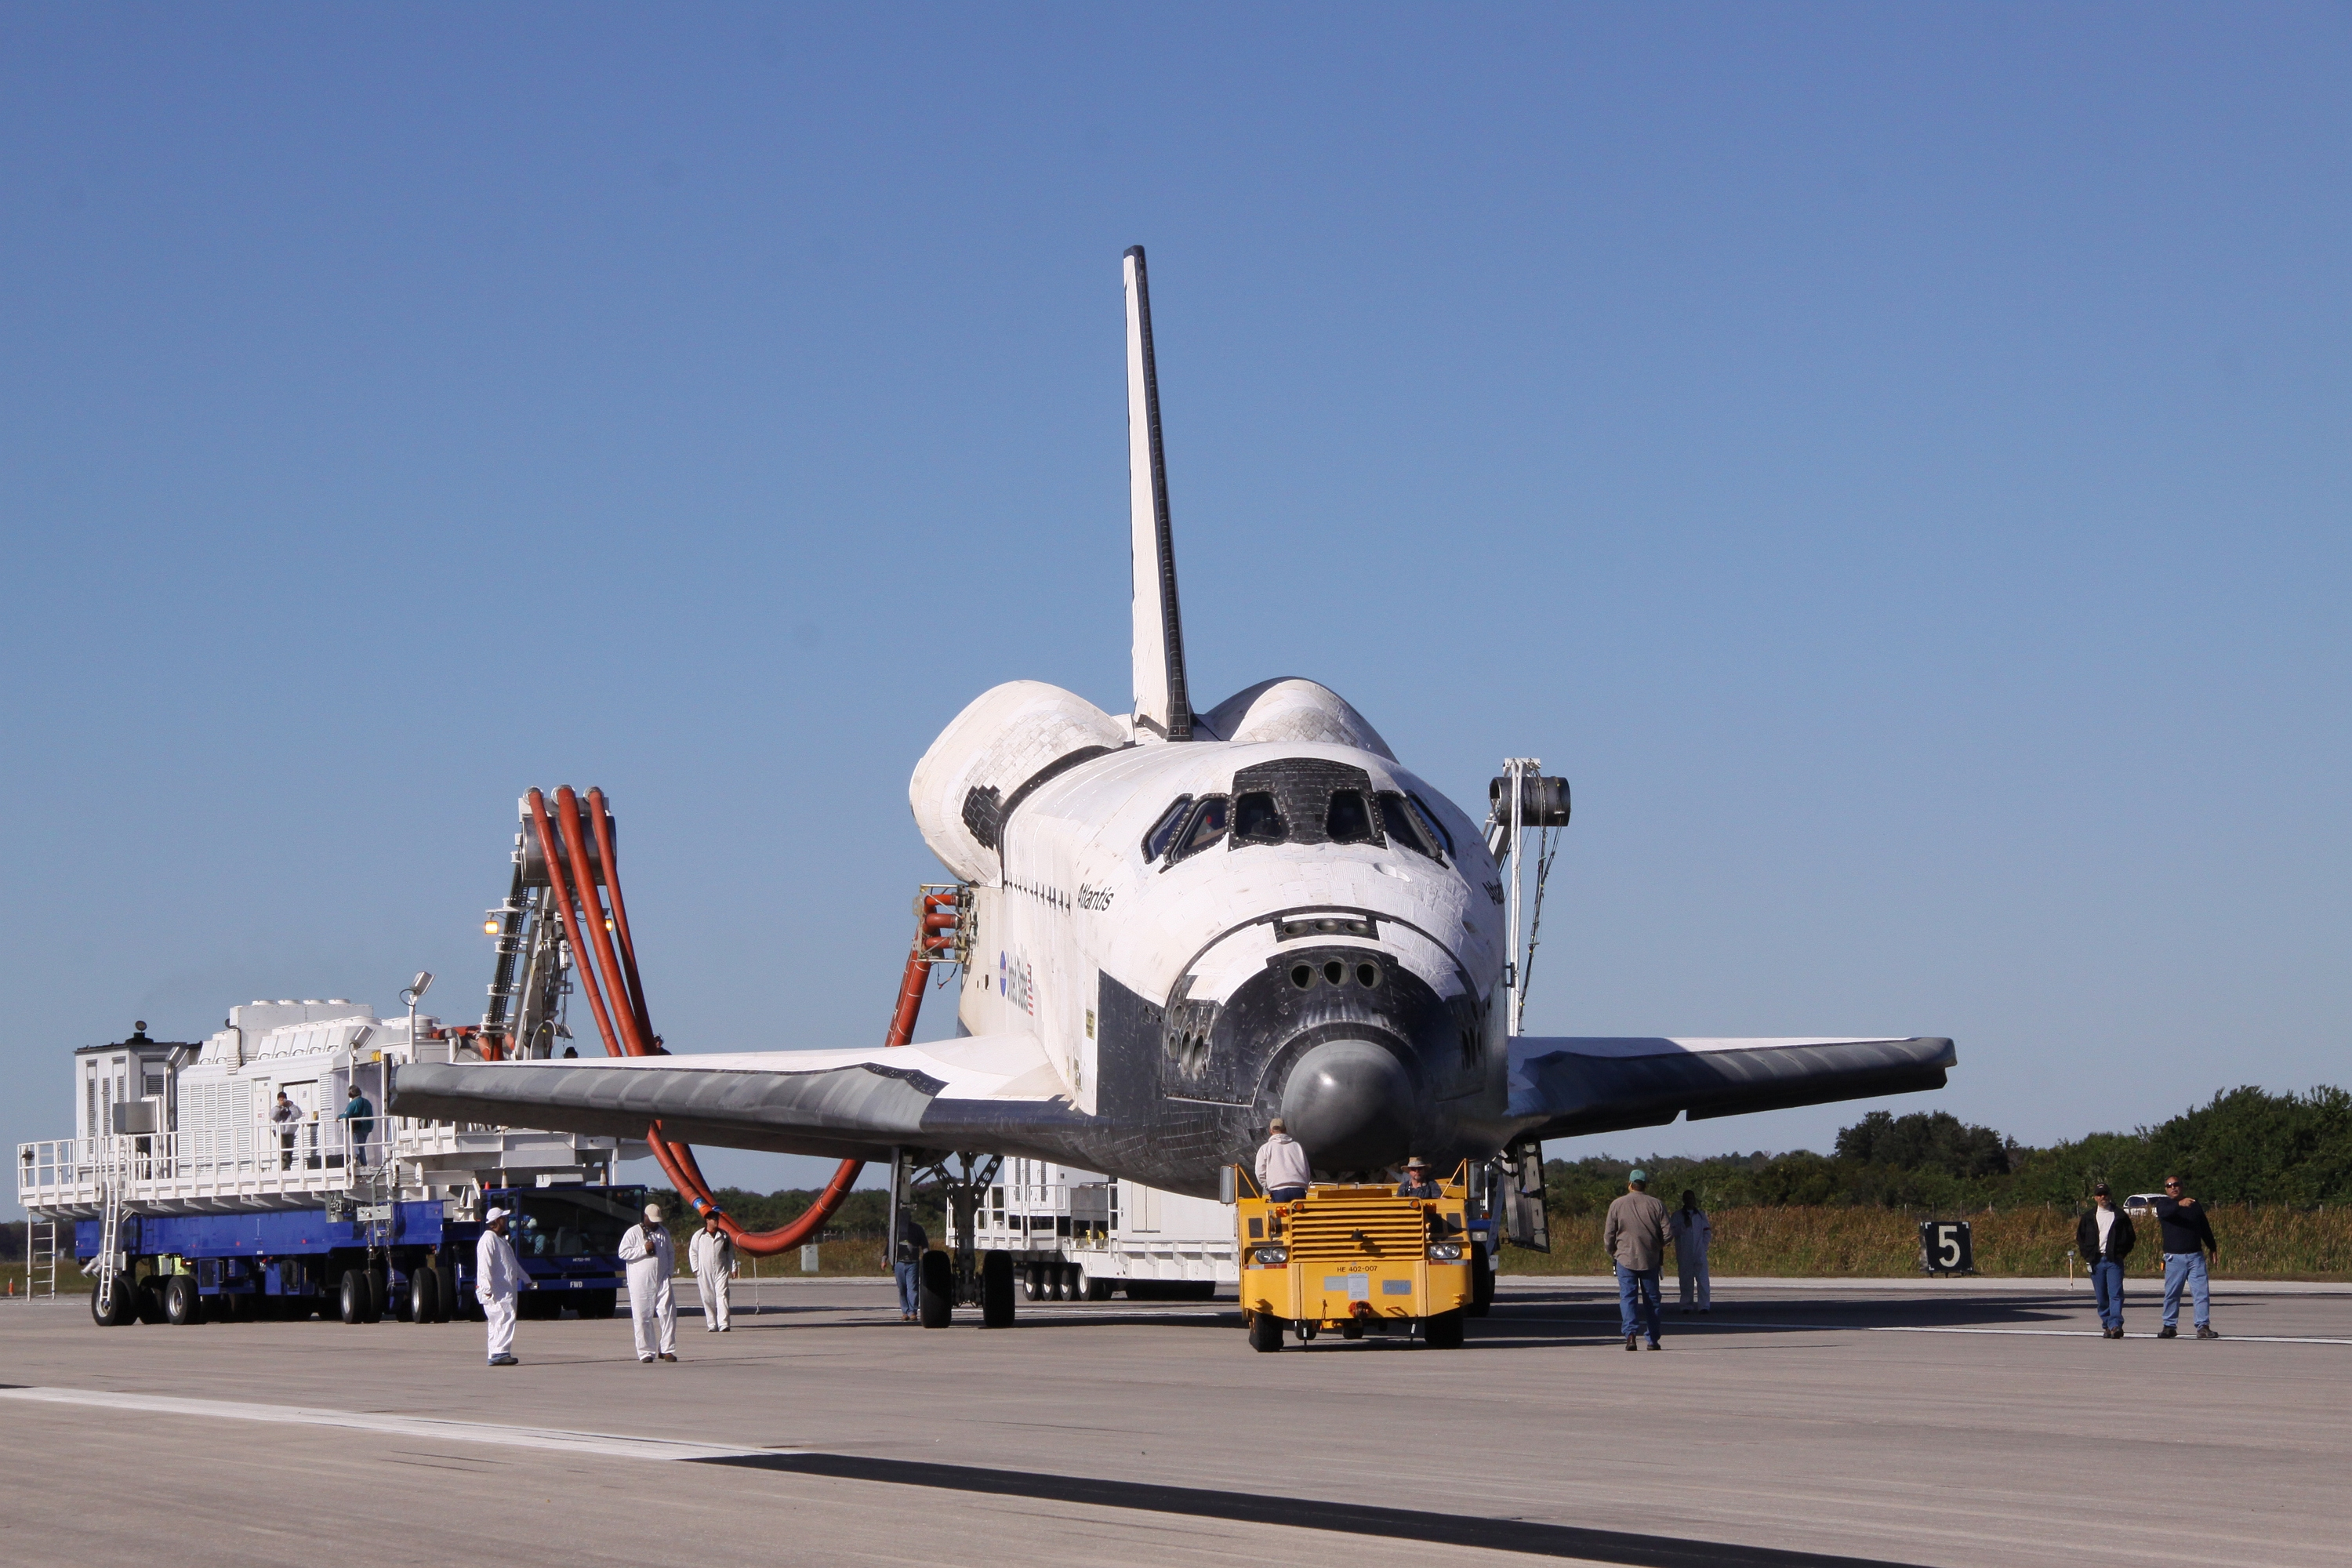 space shuttle atlantis which is orbiter - photo #28